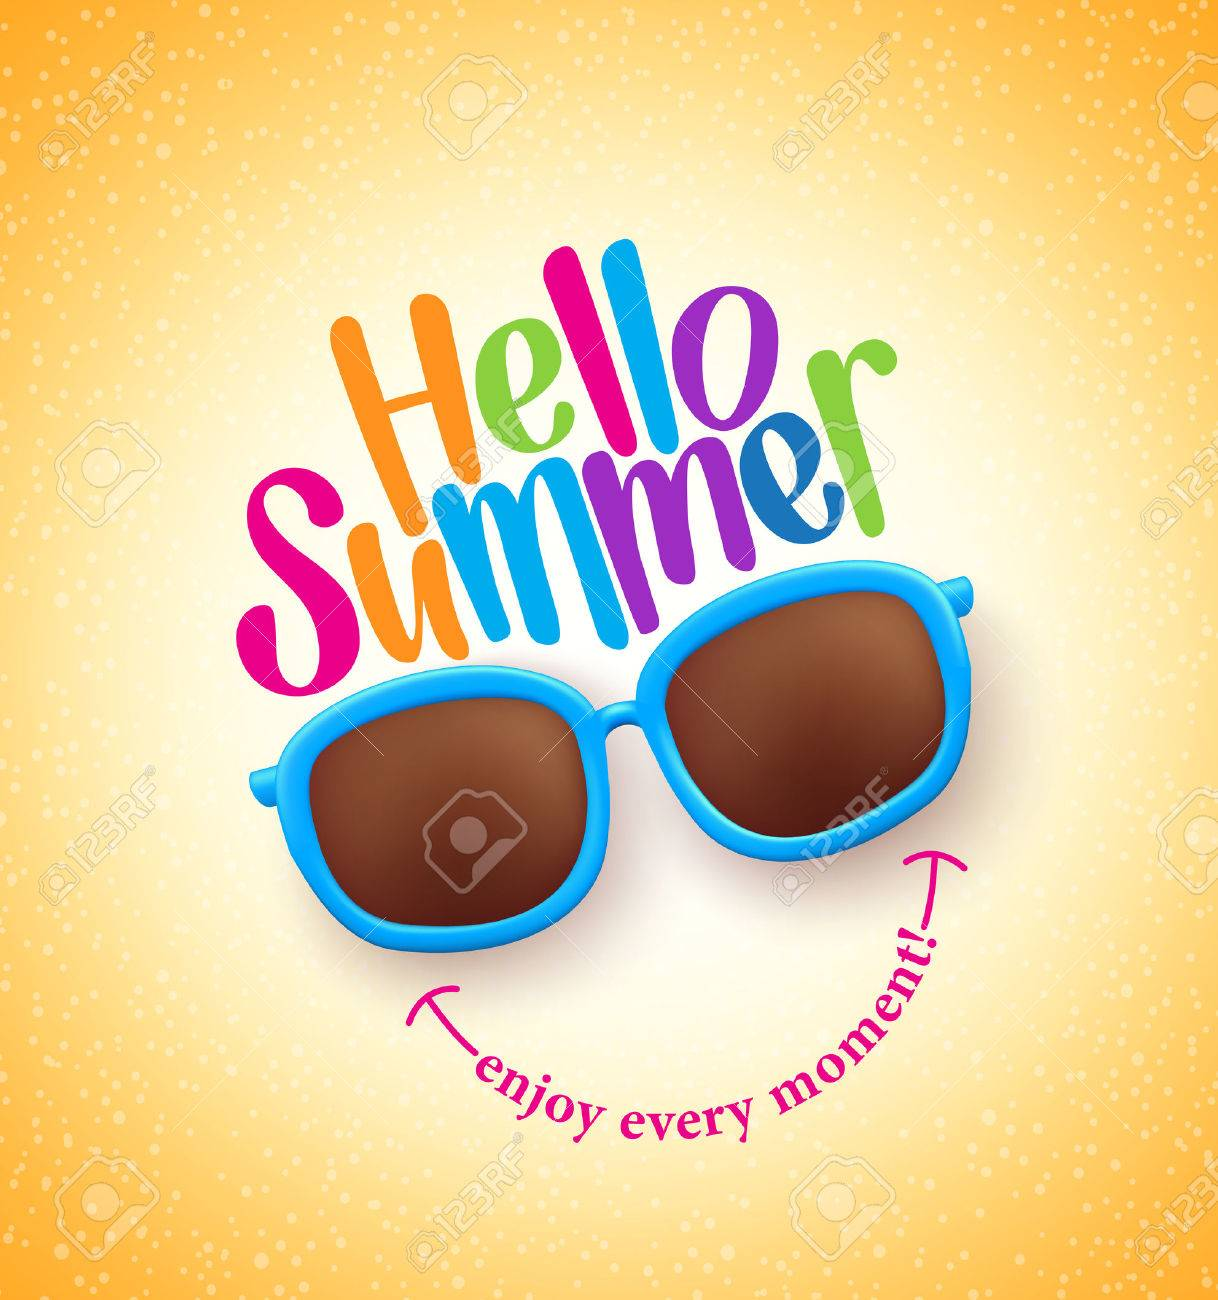 Summer Shades with Hello Summer Happy Colorful Concept in Cool Yellow Background for Summer Season. - 54020392